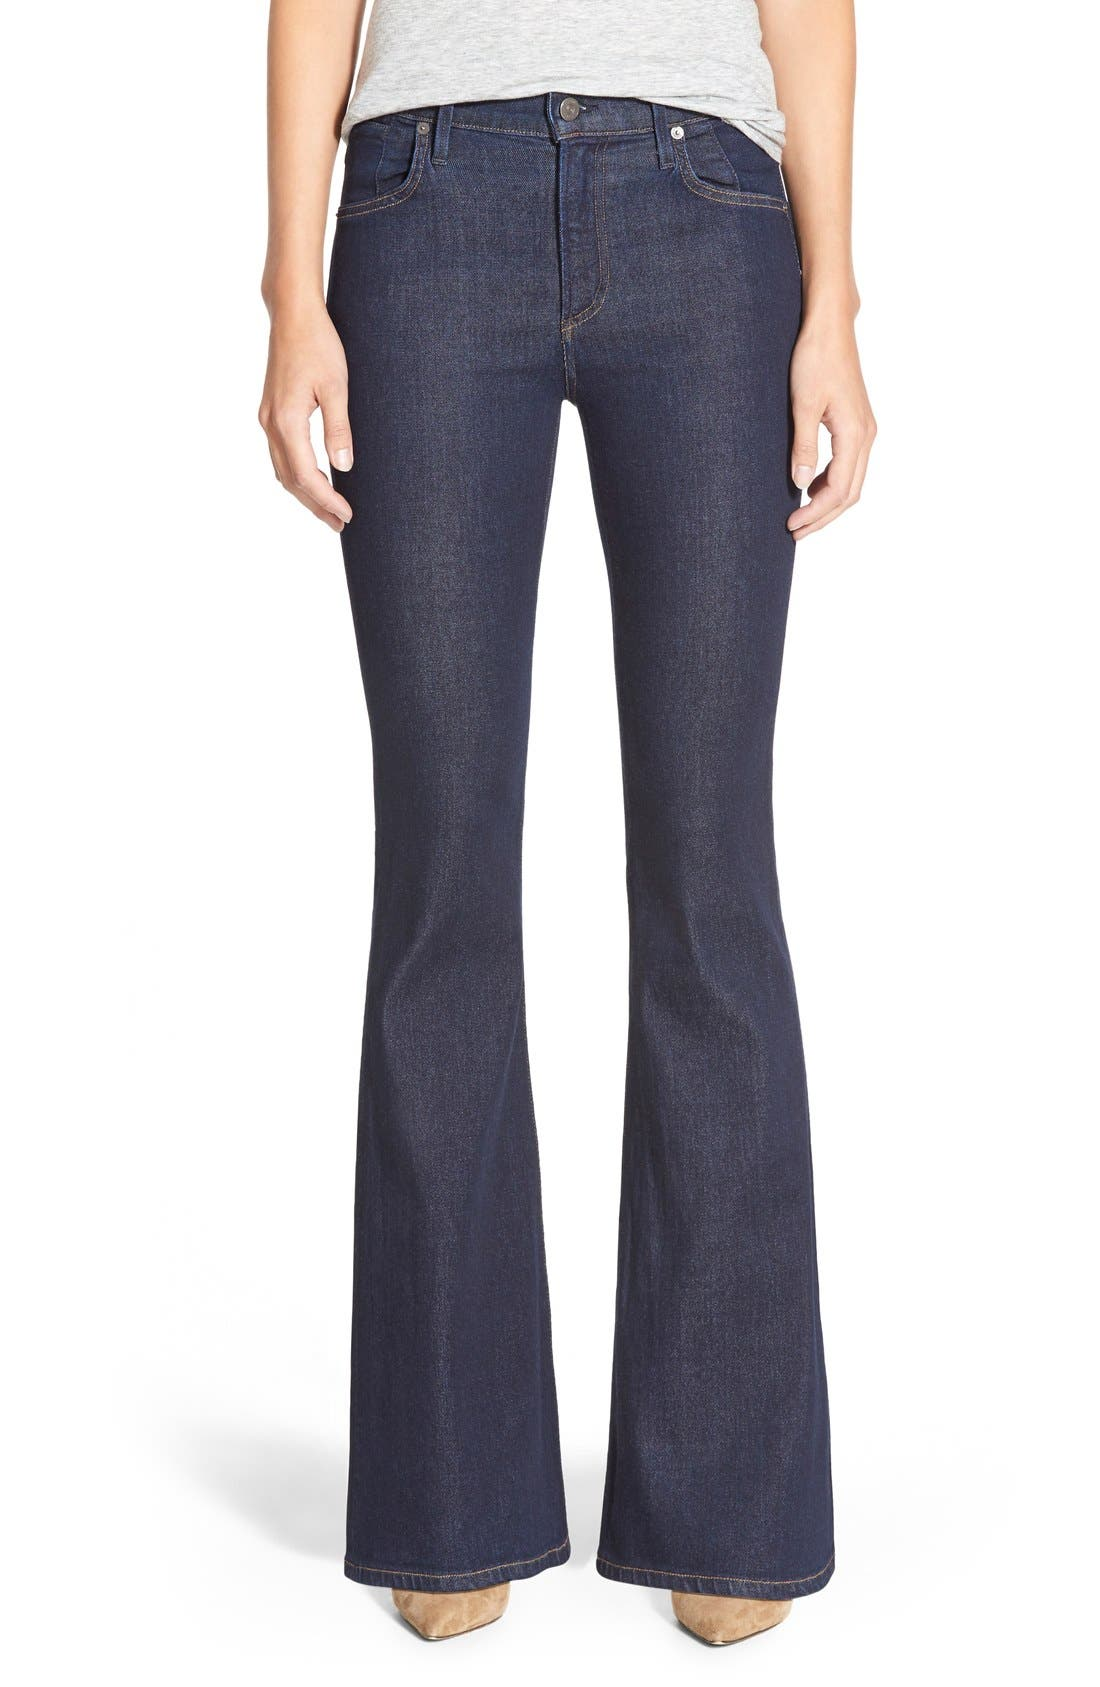 'Fleetwood' High Rise Flare Jeans,                             Main thumbnail 1, color,                             OZONE RINSE